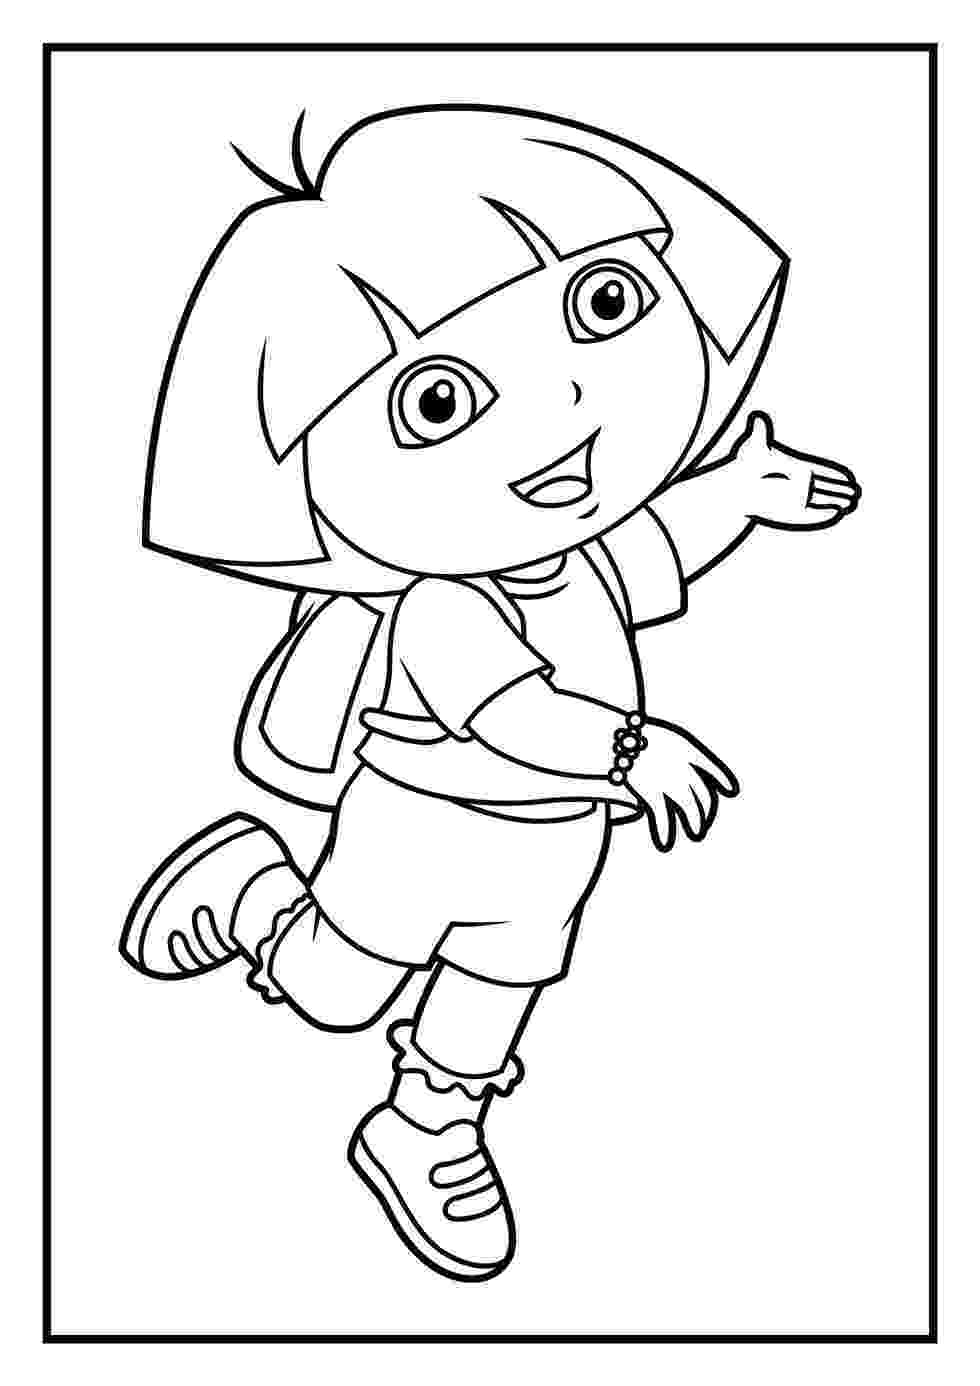 dora explorer coloring dora coloring pages diego coloring pages dora explorer coloring